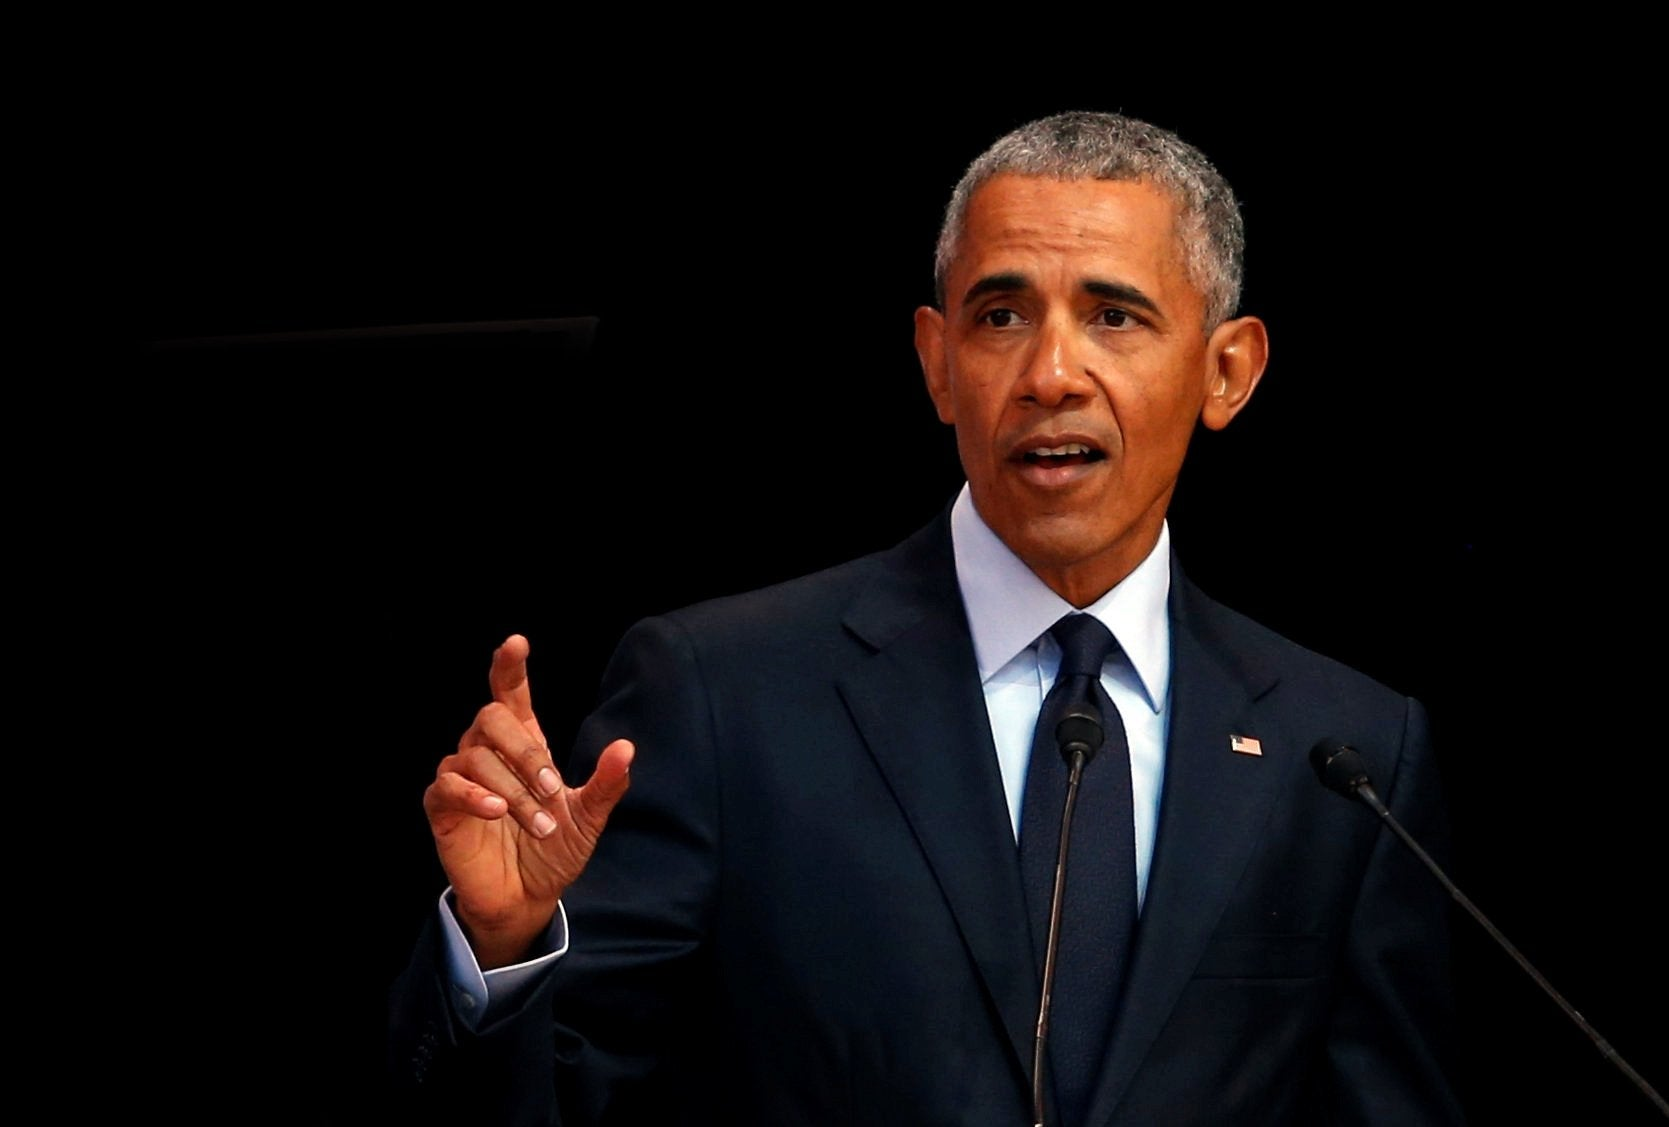 Barack Obamas Nelson Mandela Speech In Full The Independent